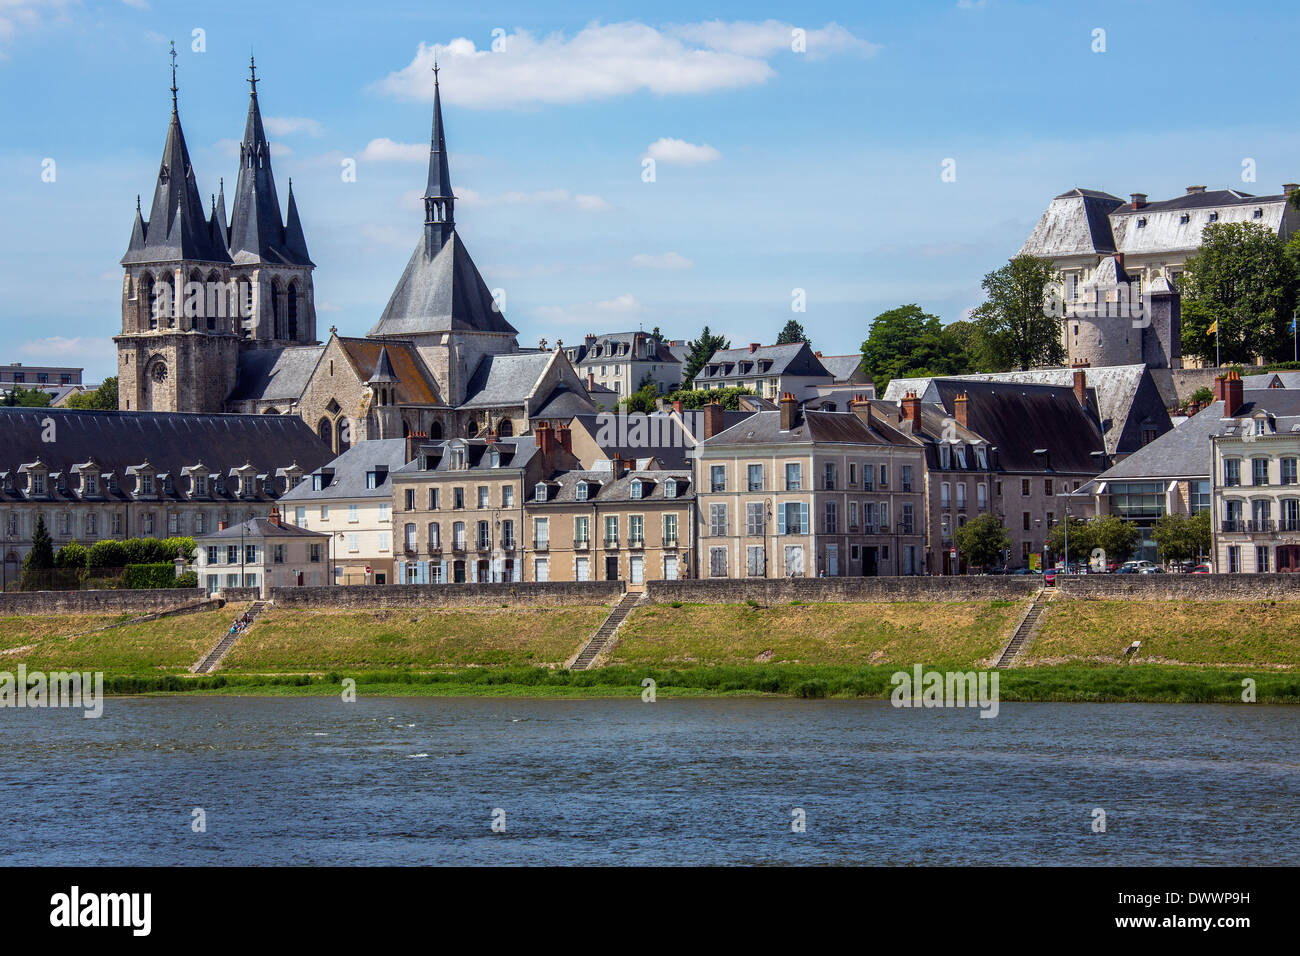 The town of Blois by the Loire River in the Loire Valley in France. - Stock Image